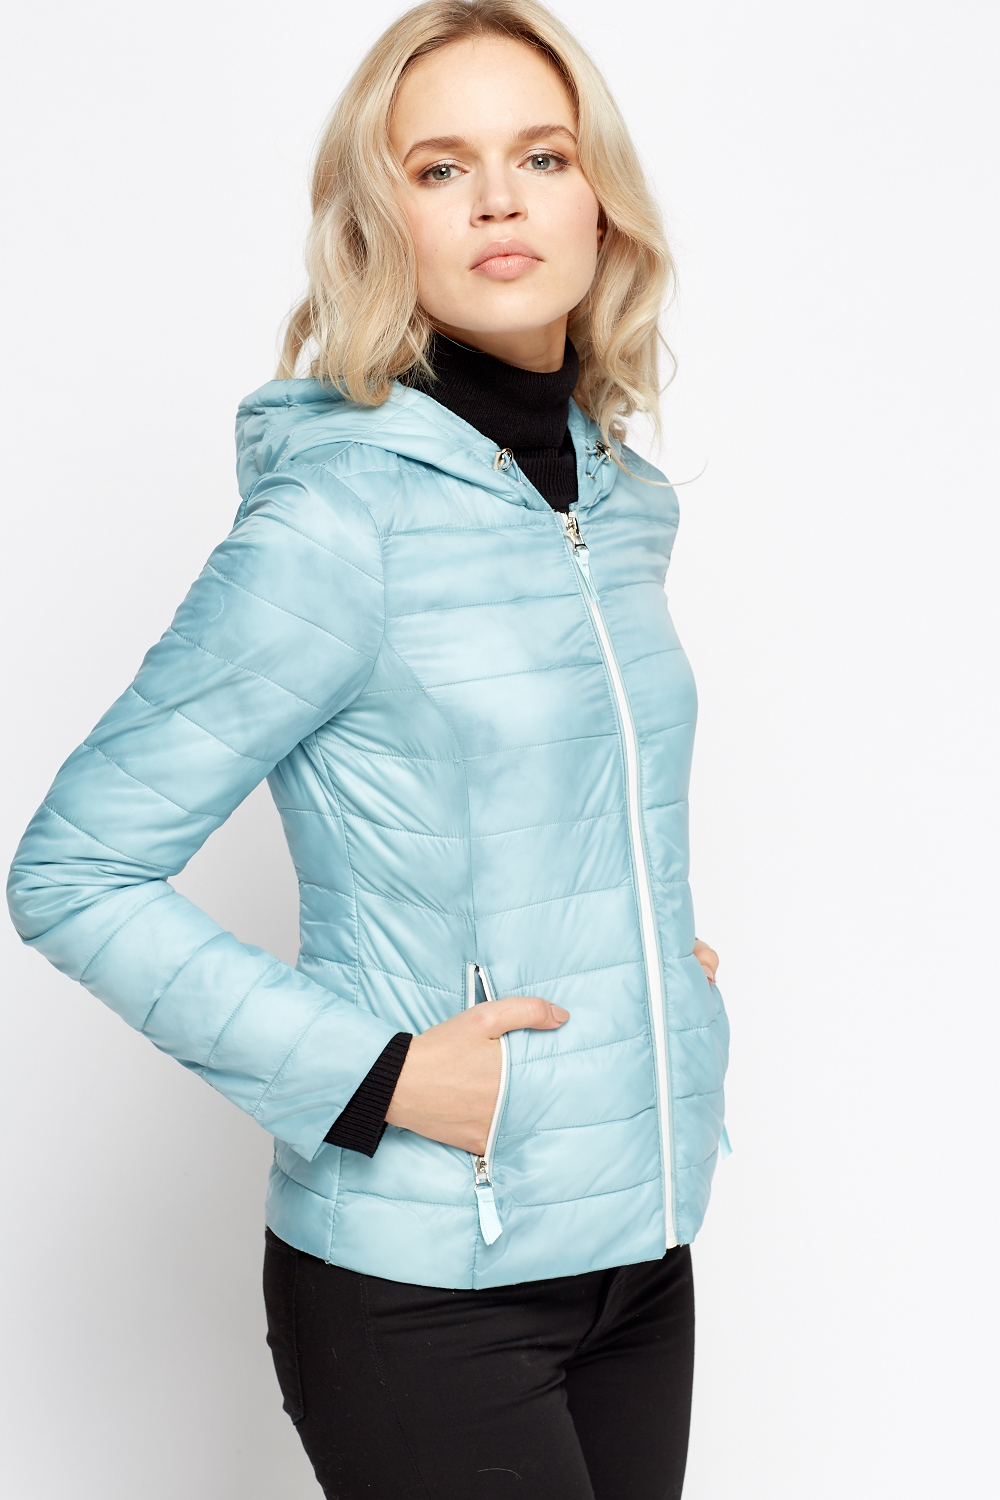 Zip Up Hooded Puffer Jacket - Just $6